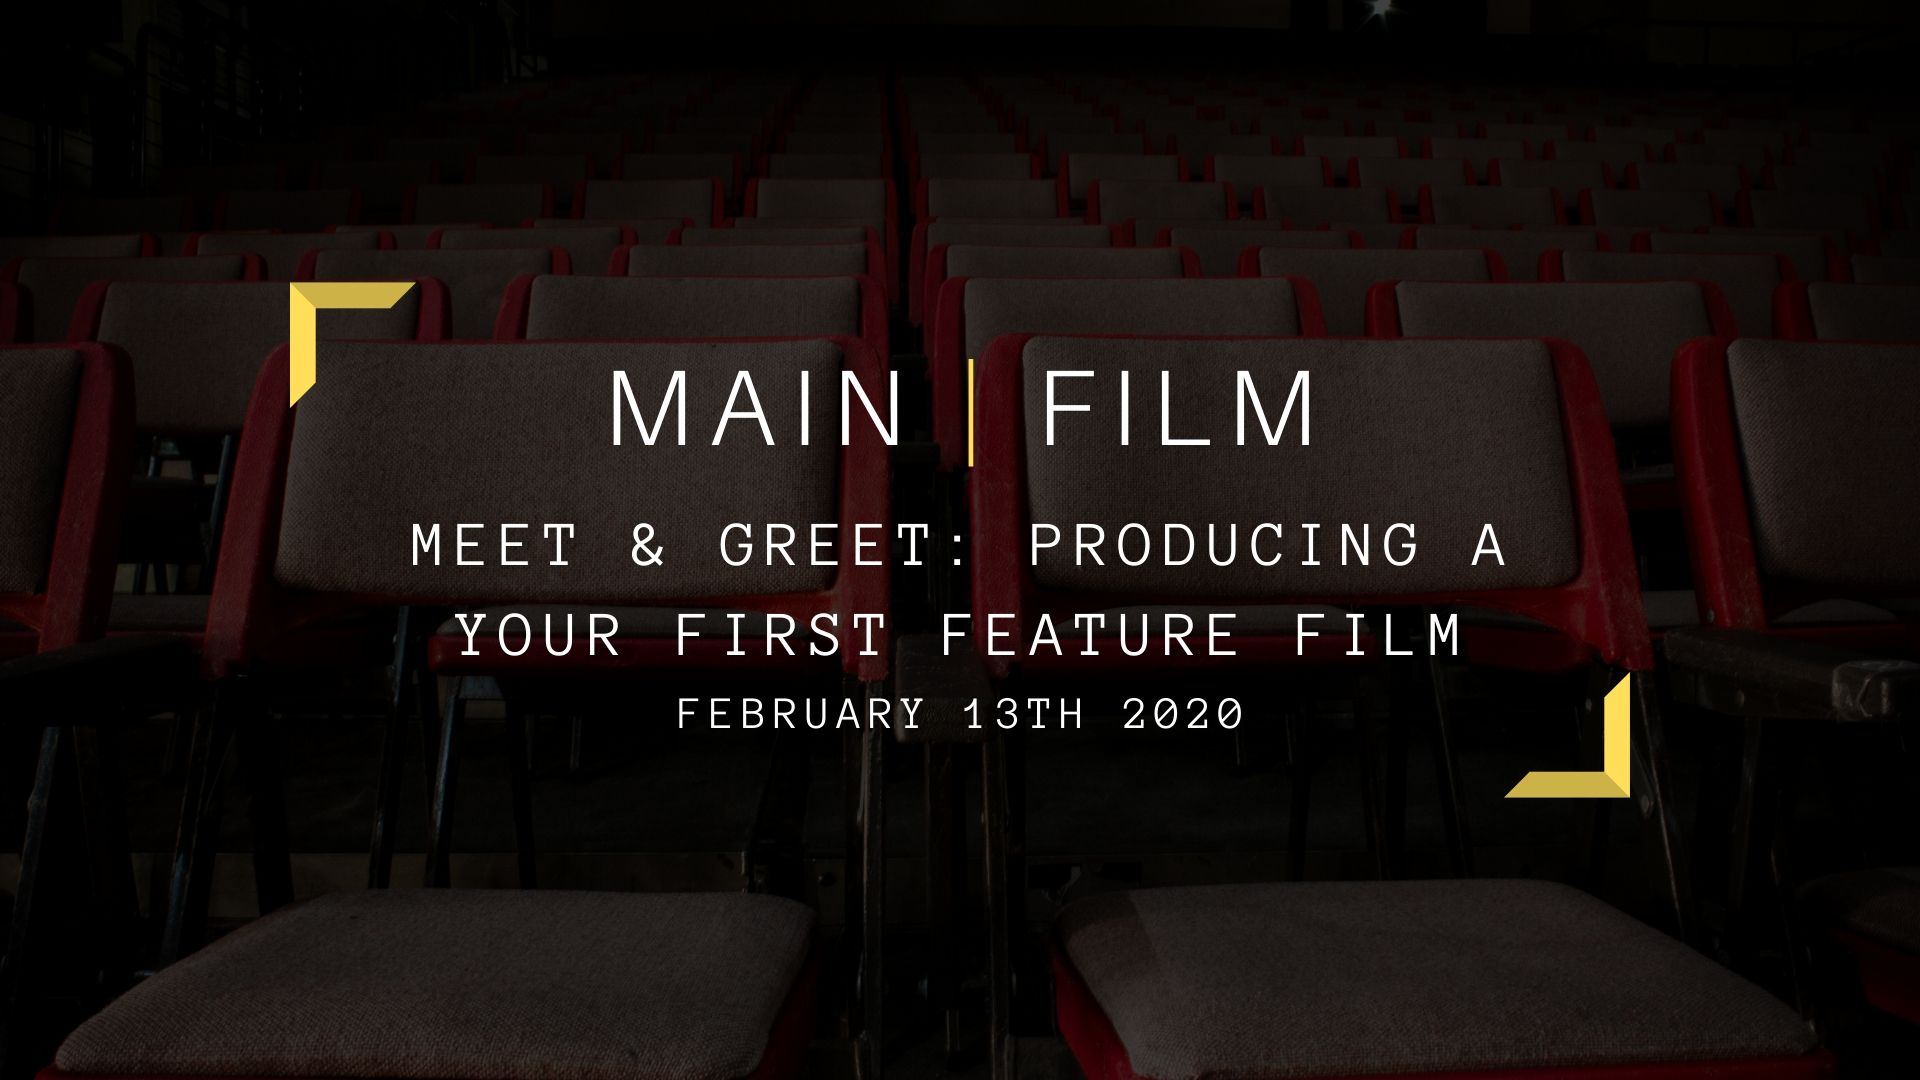 Meet & Greet: Producing a Your First Feature Film